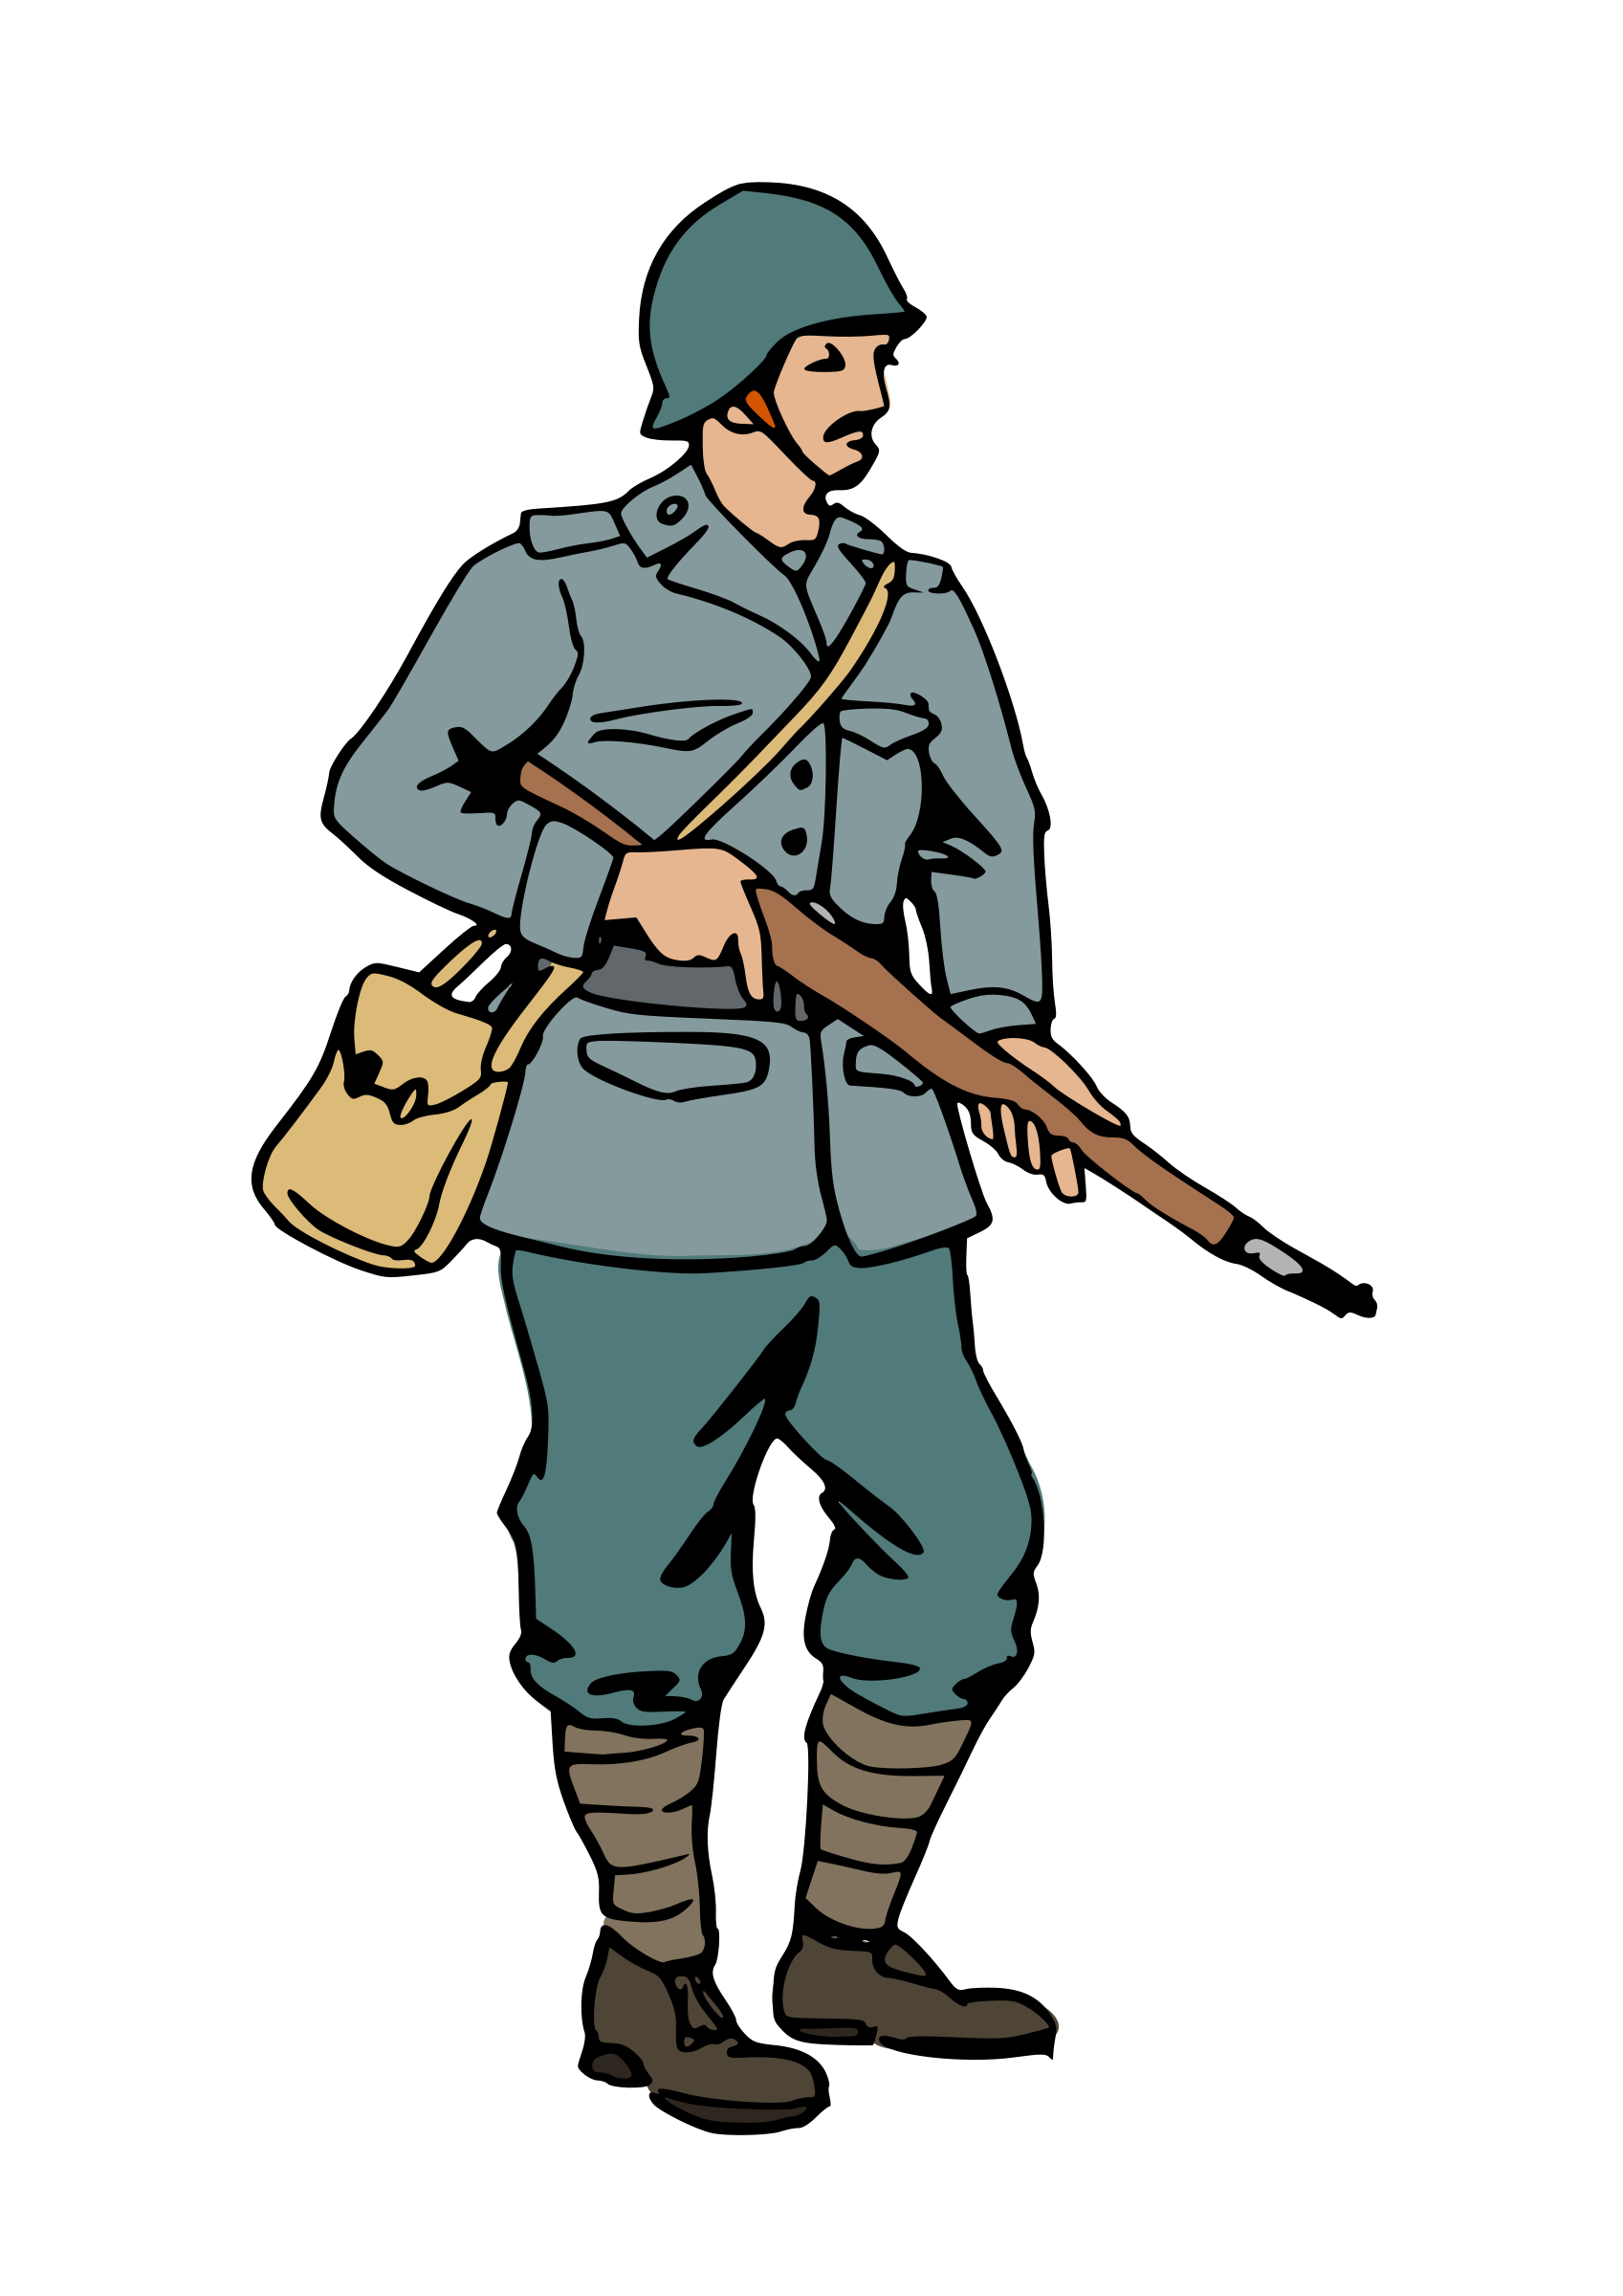 Warrior clipart sport. Wwi soldier silhouette at